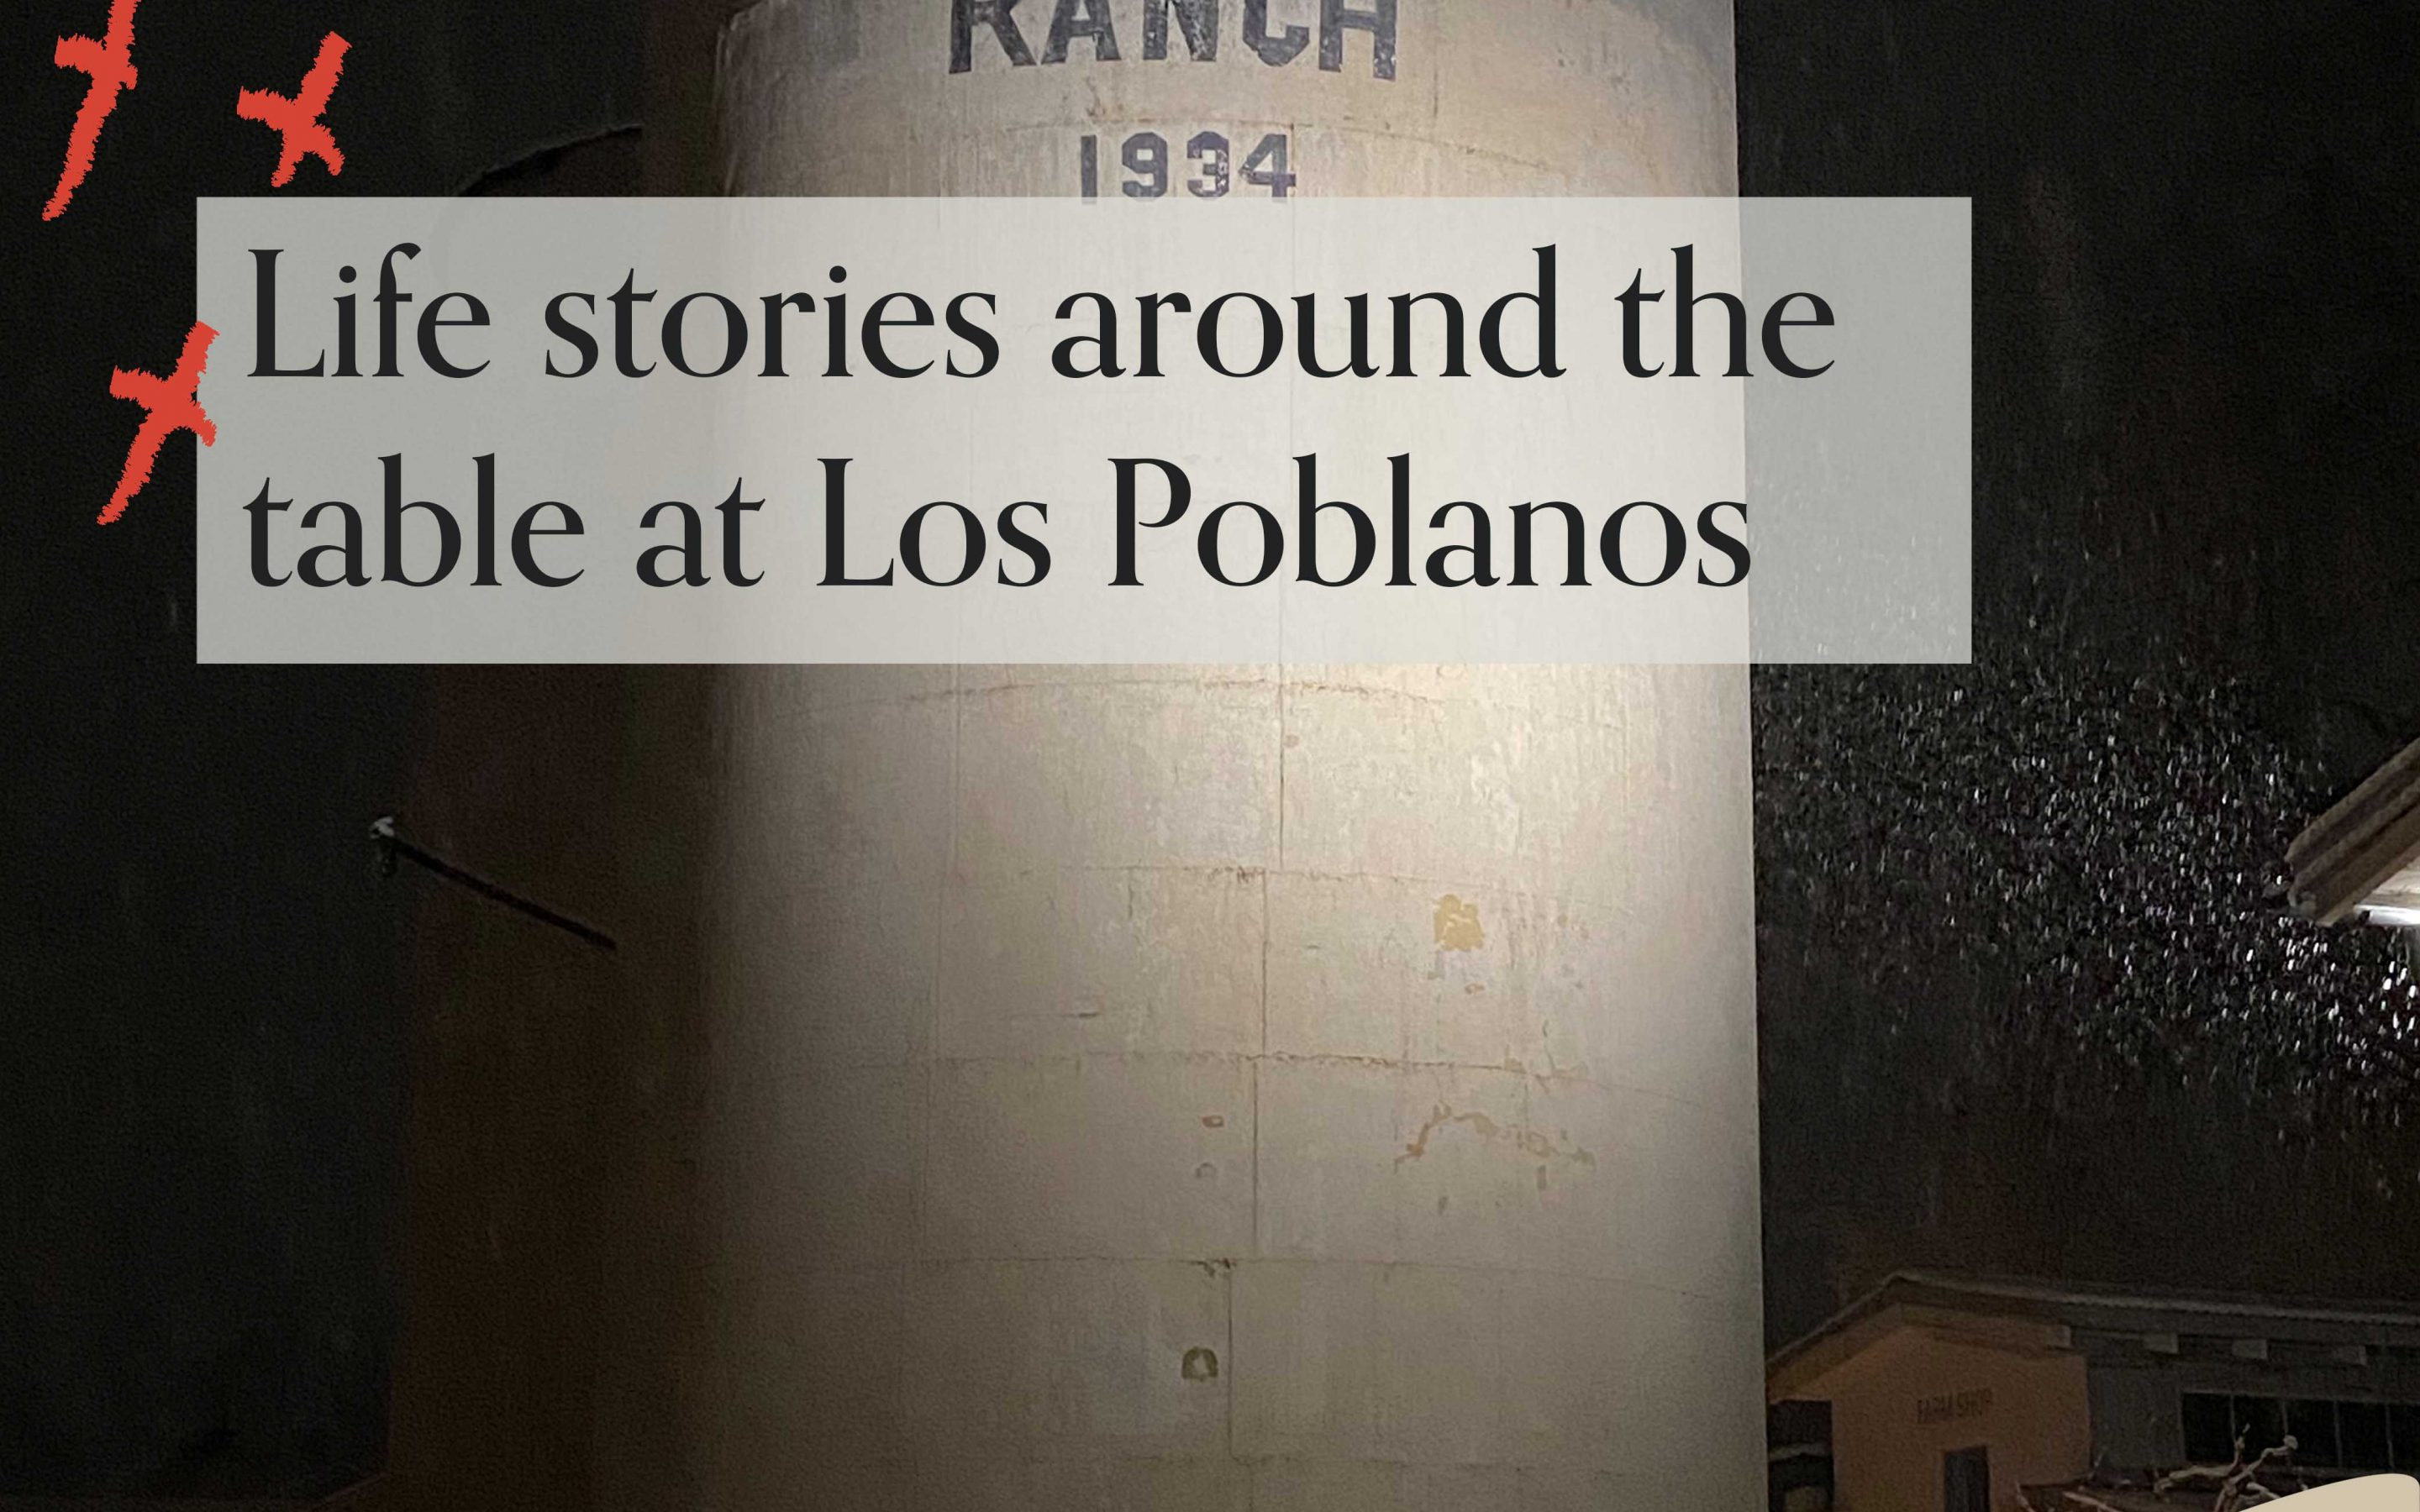 Life stories around the table at Los Poblanos